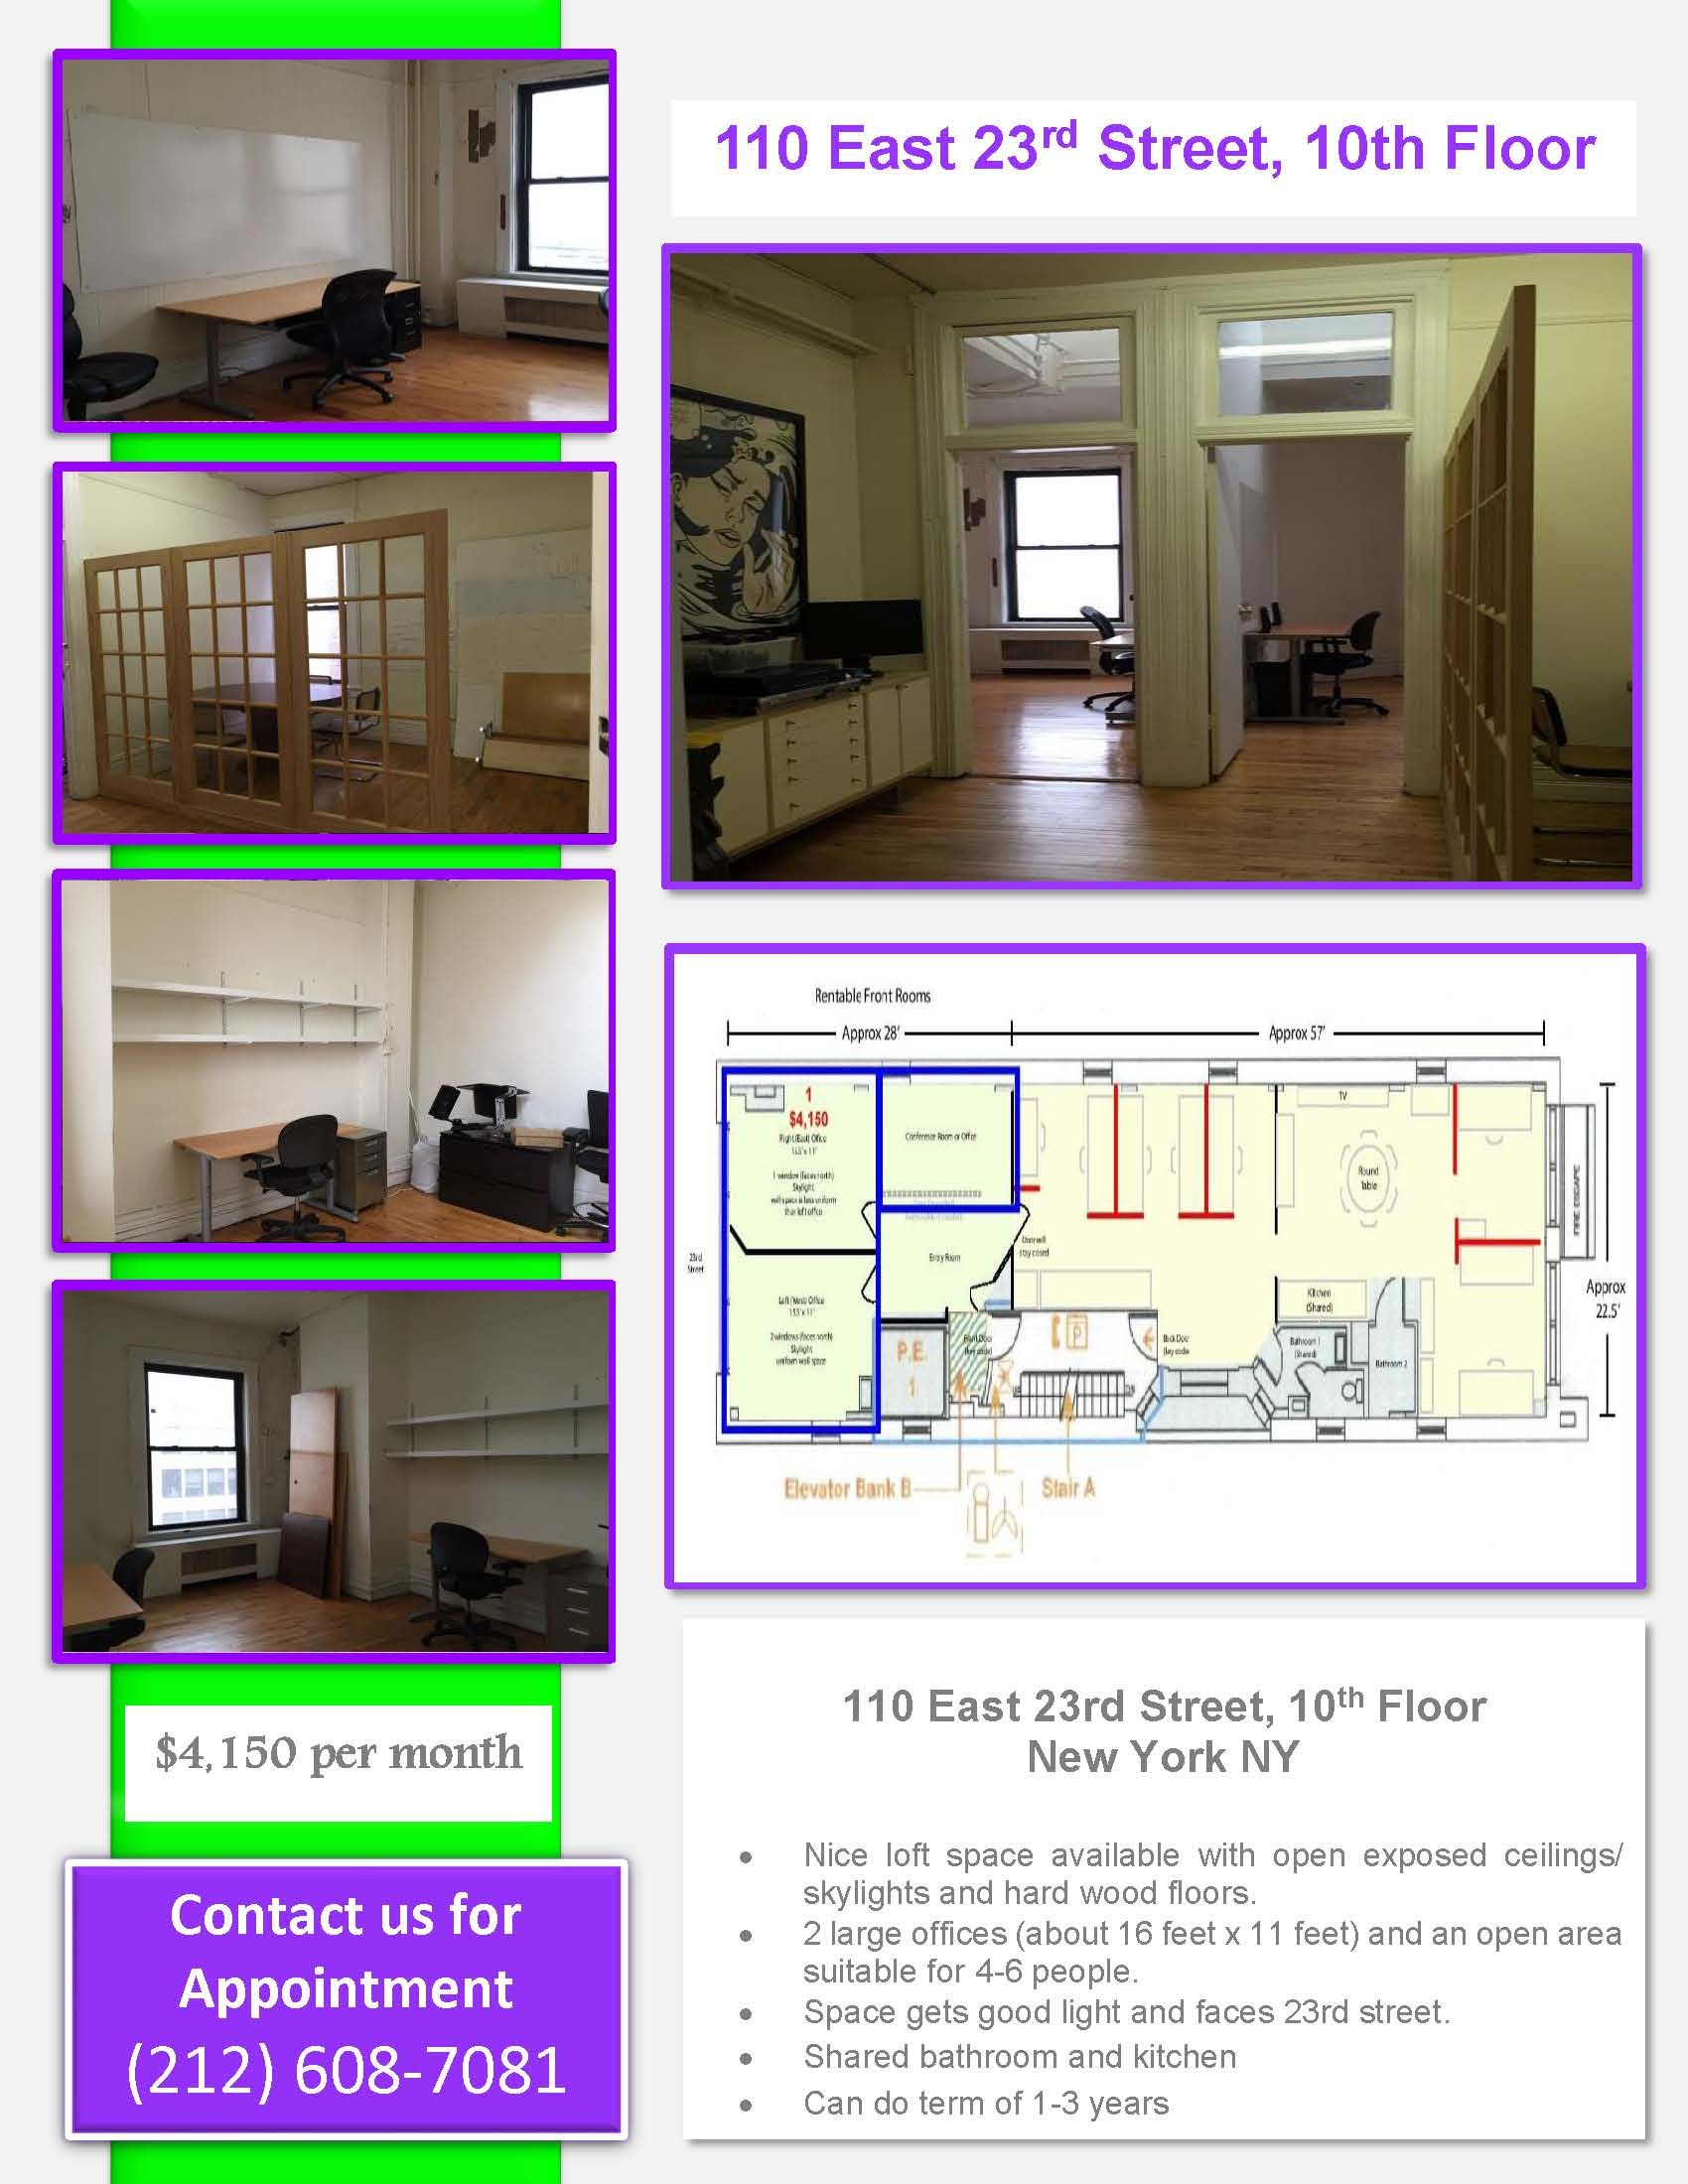 Great Location Sunny Loft Style Open Office Space With 10 Ceilings Towering Skylights And Hardwood Floors T Loft Spaces Office Space Nyc Open Space Office